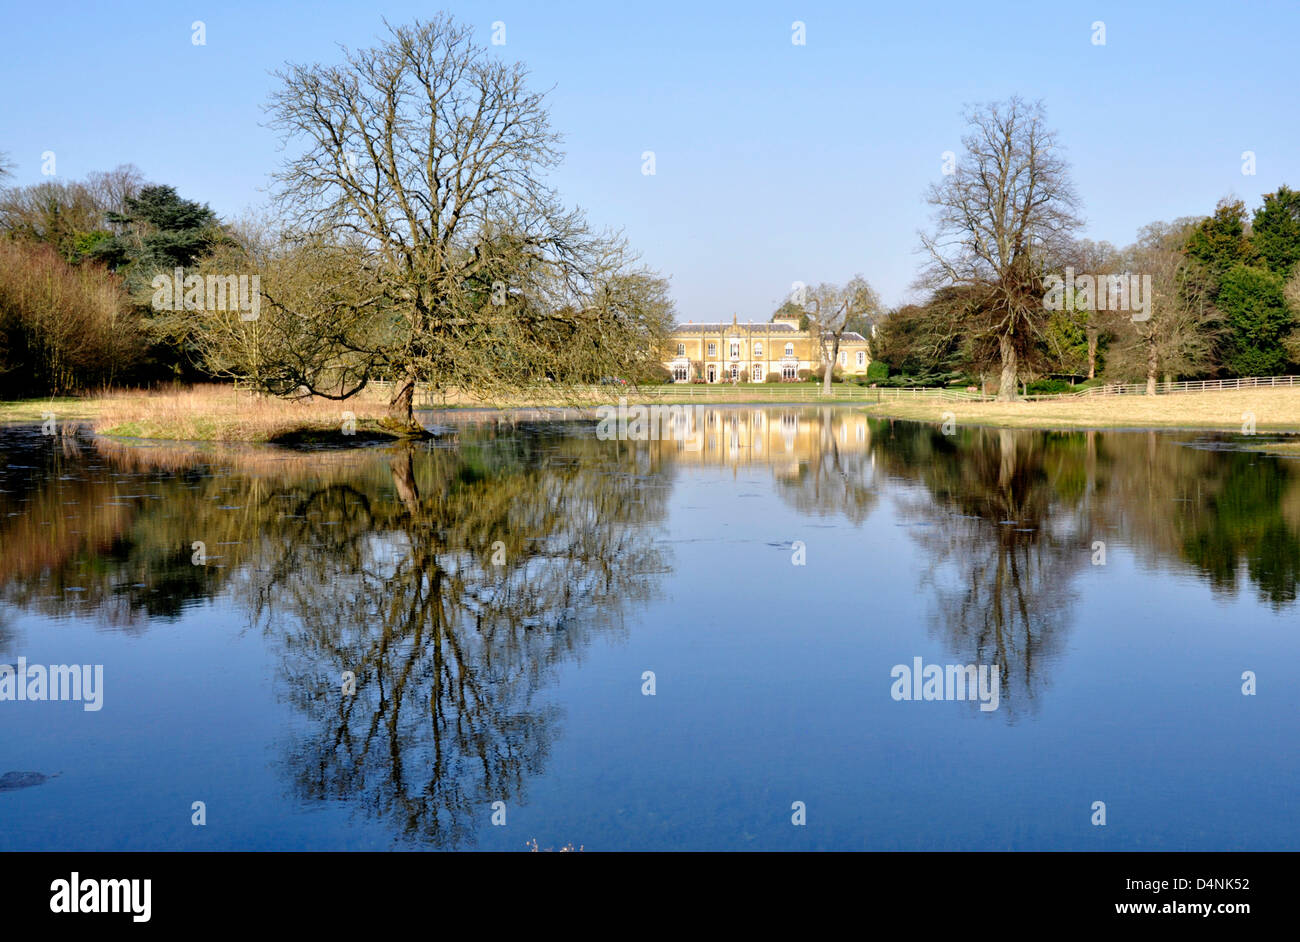 Chilterns Great Missenden the abbey across lake formed by river Misbourne - brilliant winter sunlight still water - Stock Image